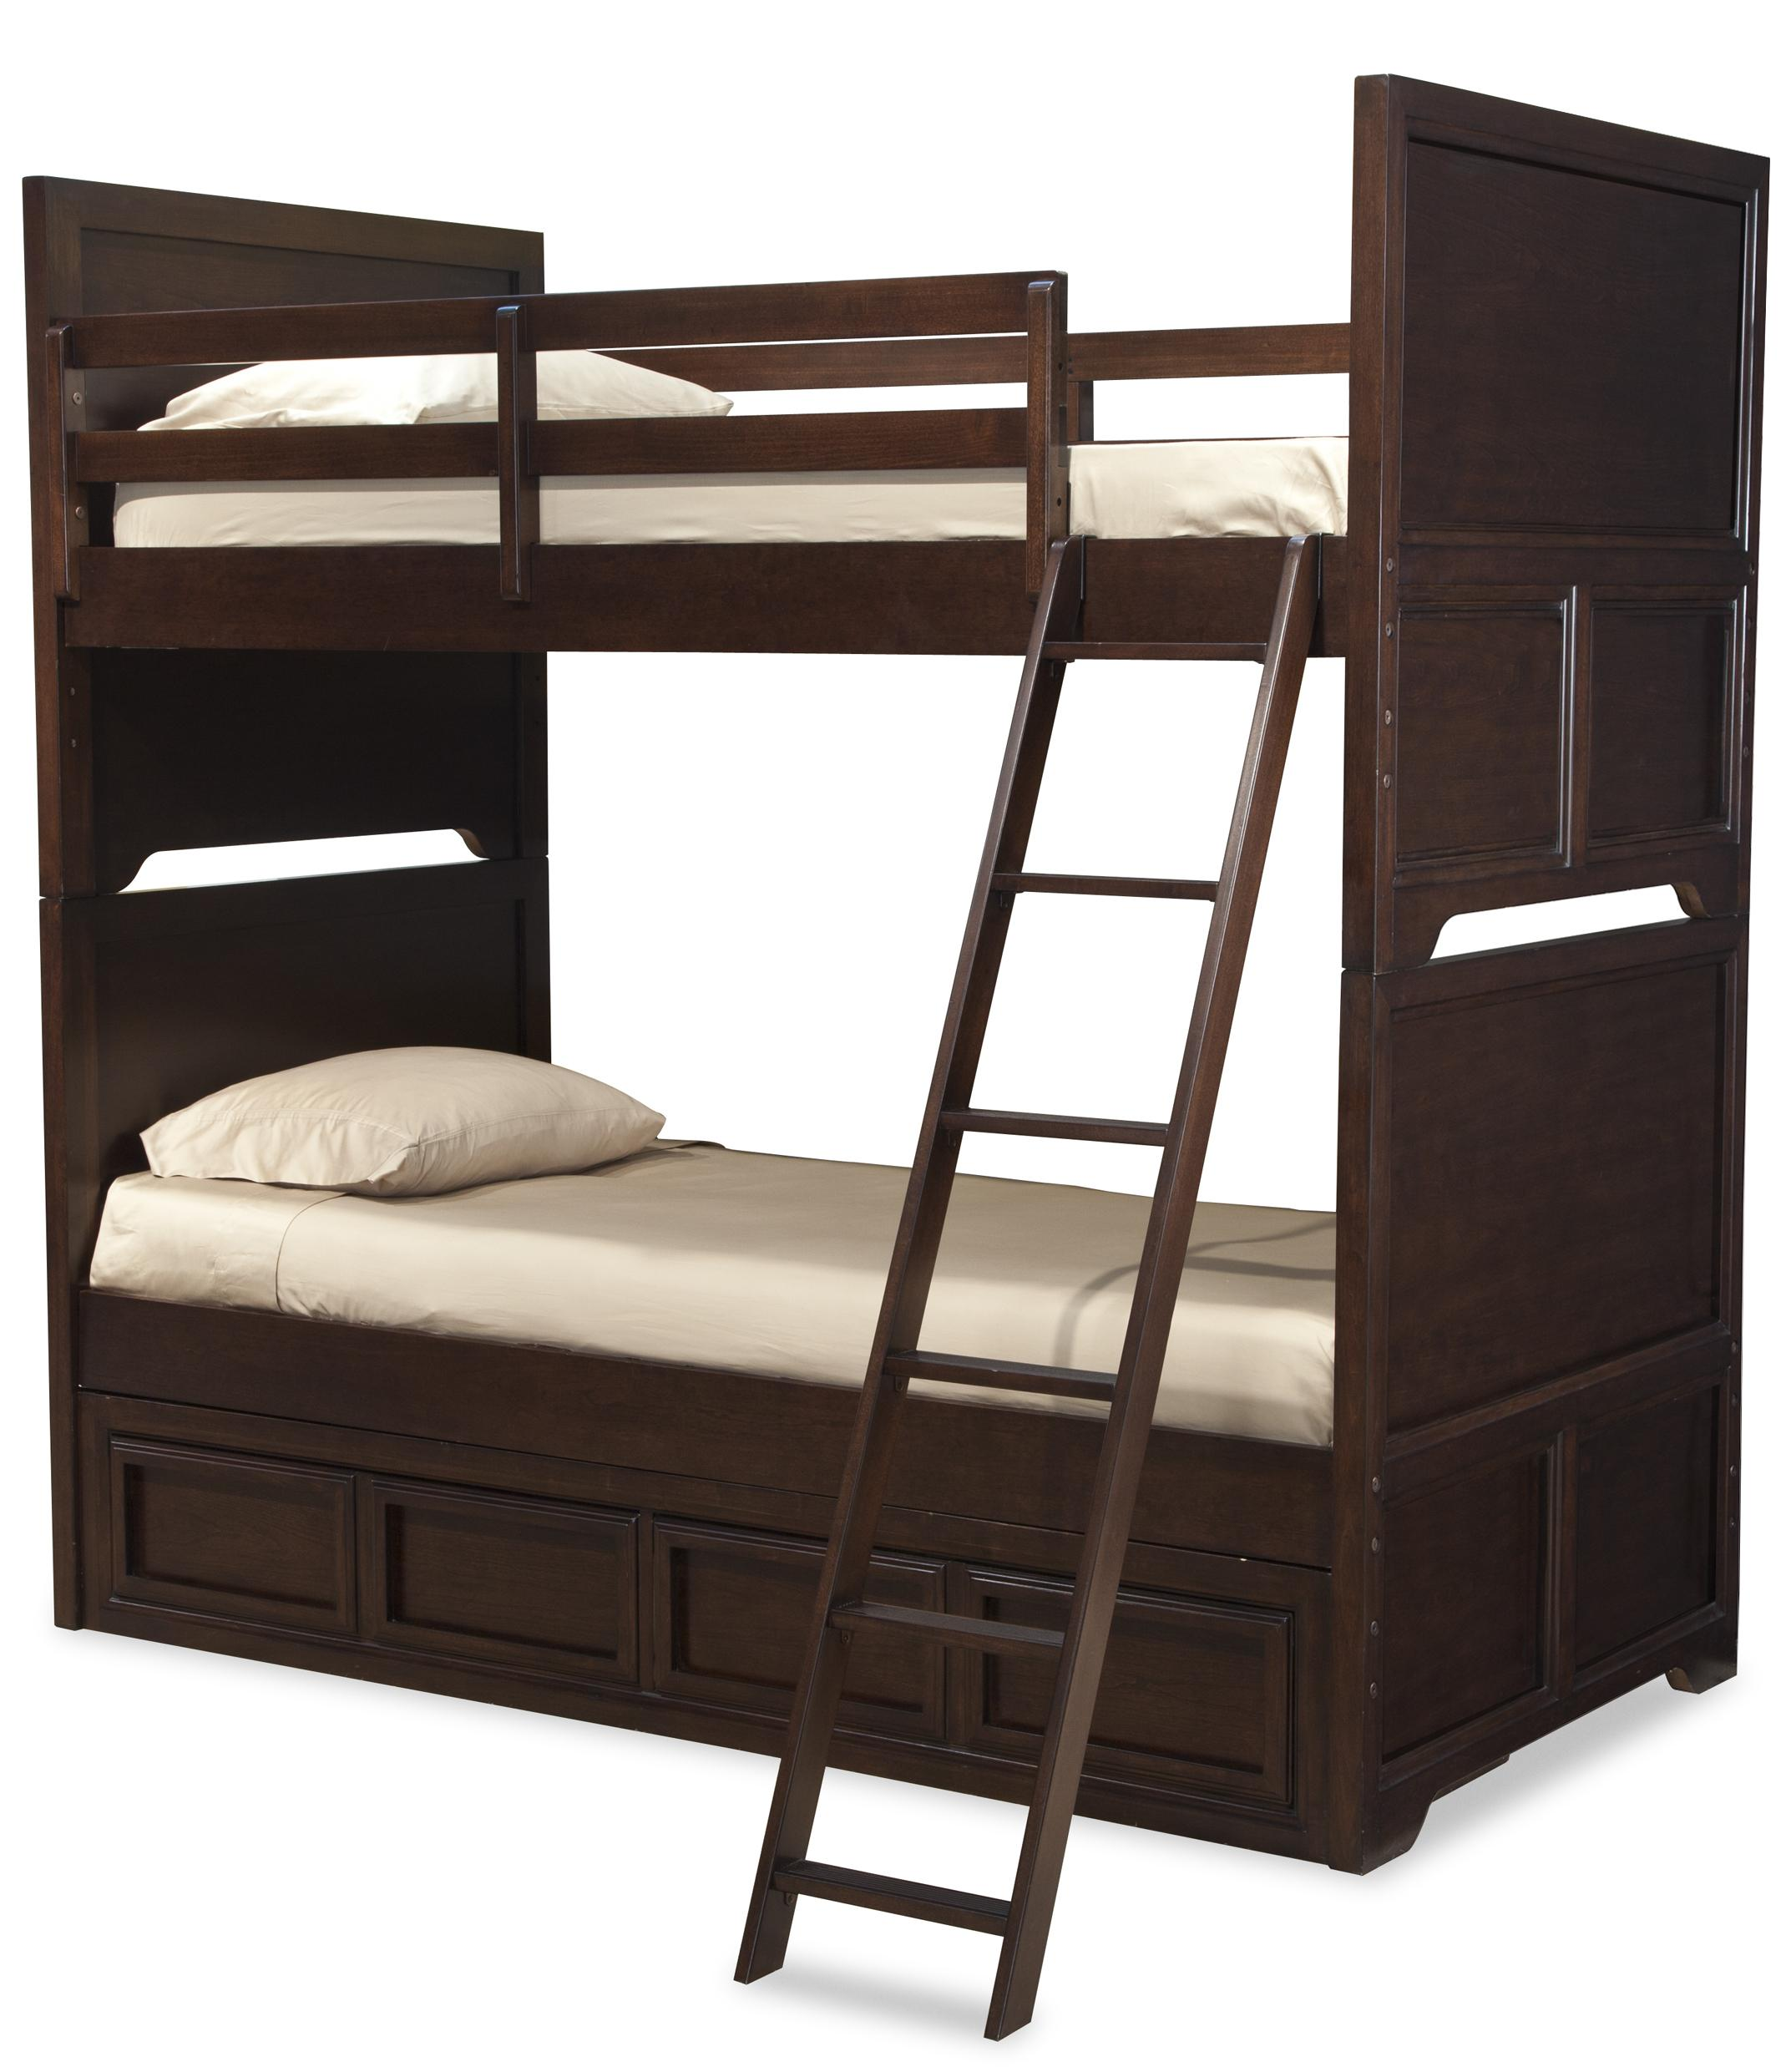 Legacy Classic Kids Benchmark Twin over Twin Bunk Bed with Storage Drawer - Item Number: 2970-8106SK